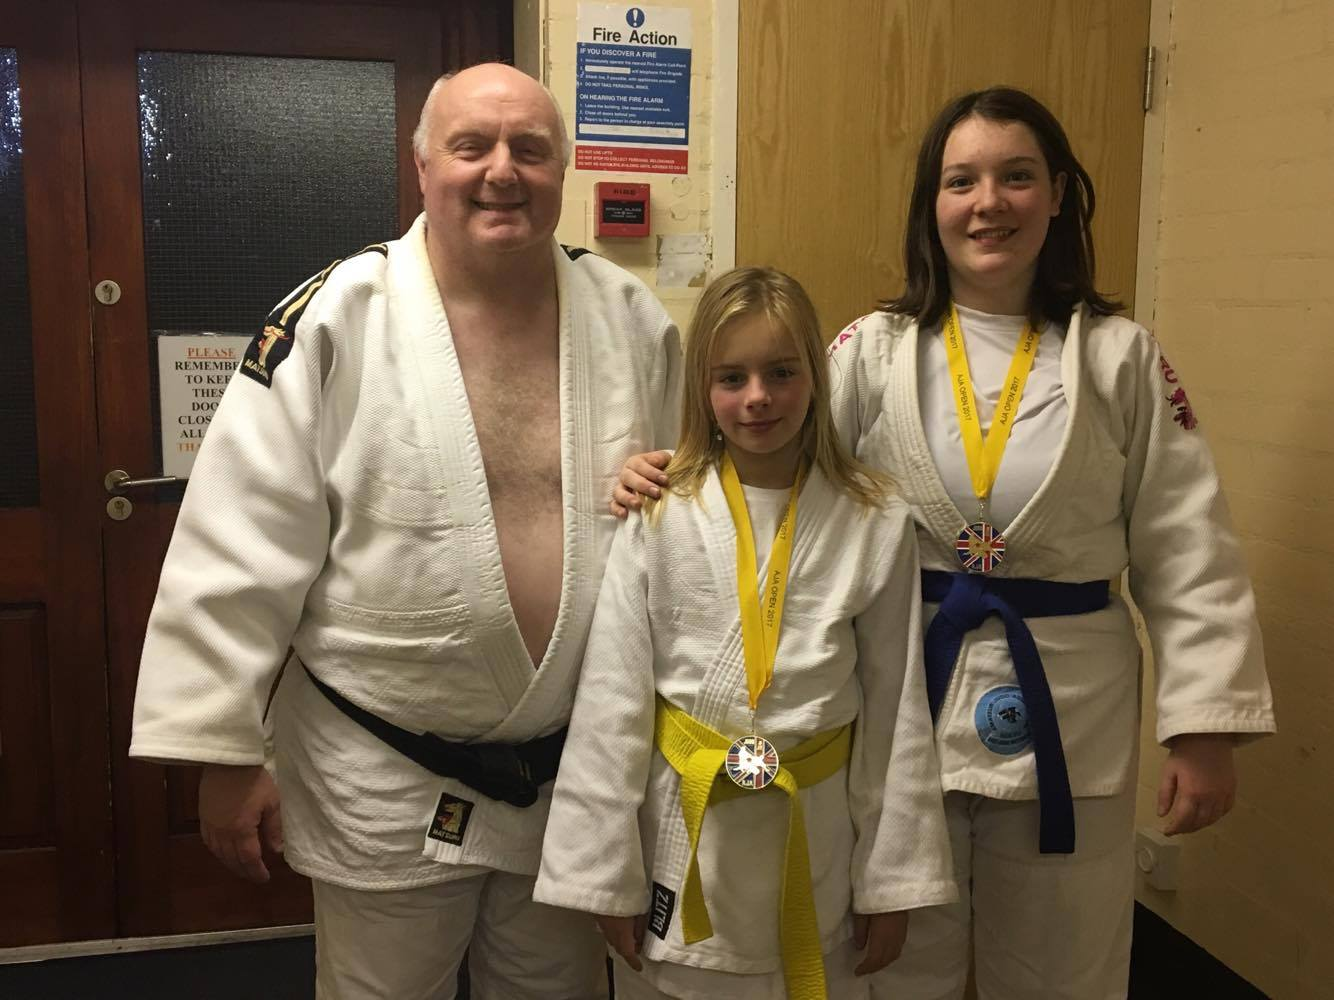 Gold medal winner Megan Skillern (right) and Tamzin Rudge with instructor Thomas Ewins